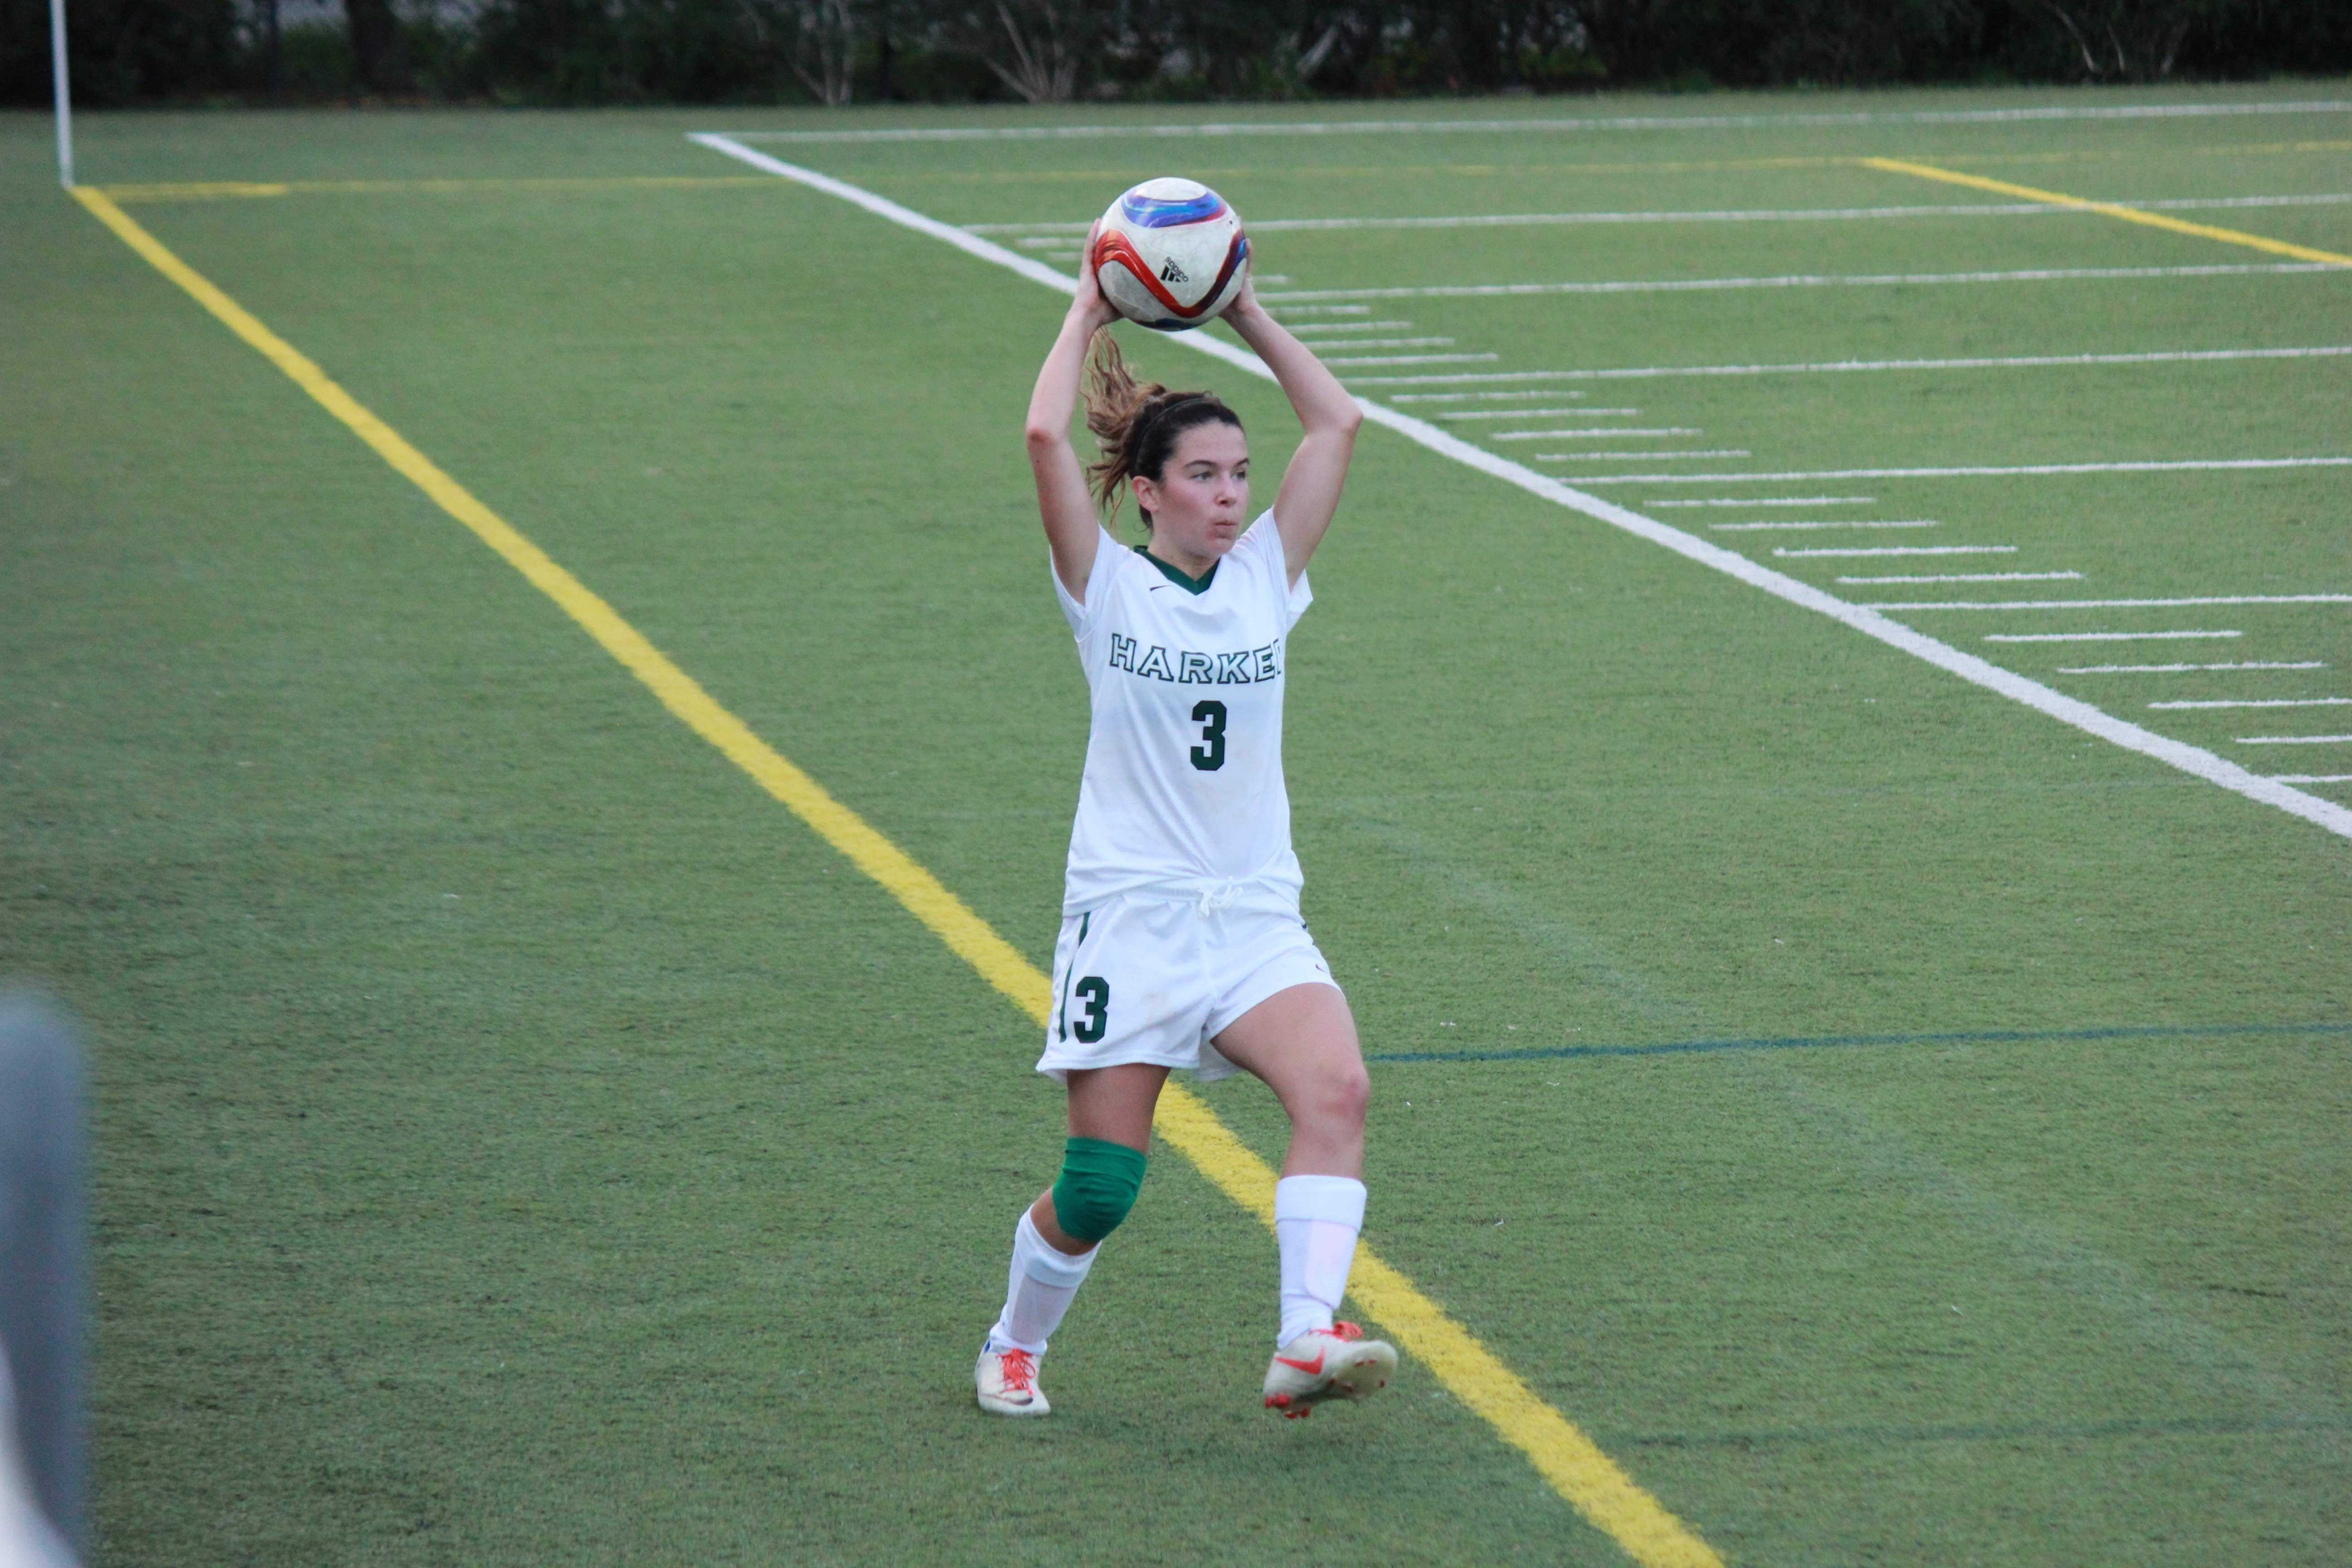 Junior Stephanie Scaglia prepares to throw the ball in during the team's match.